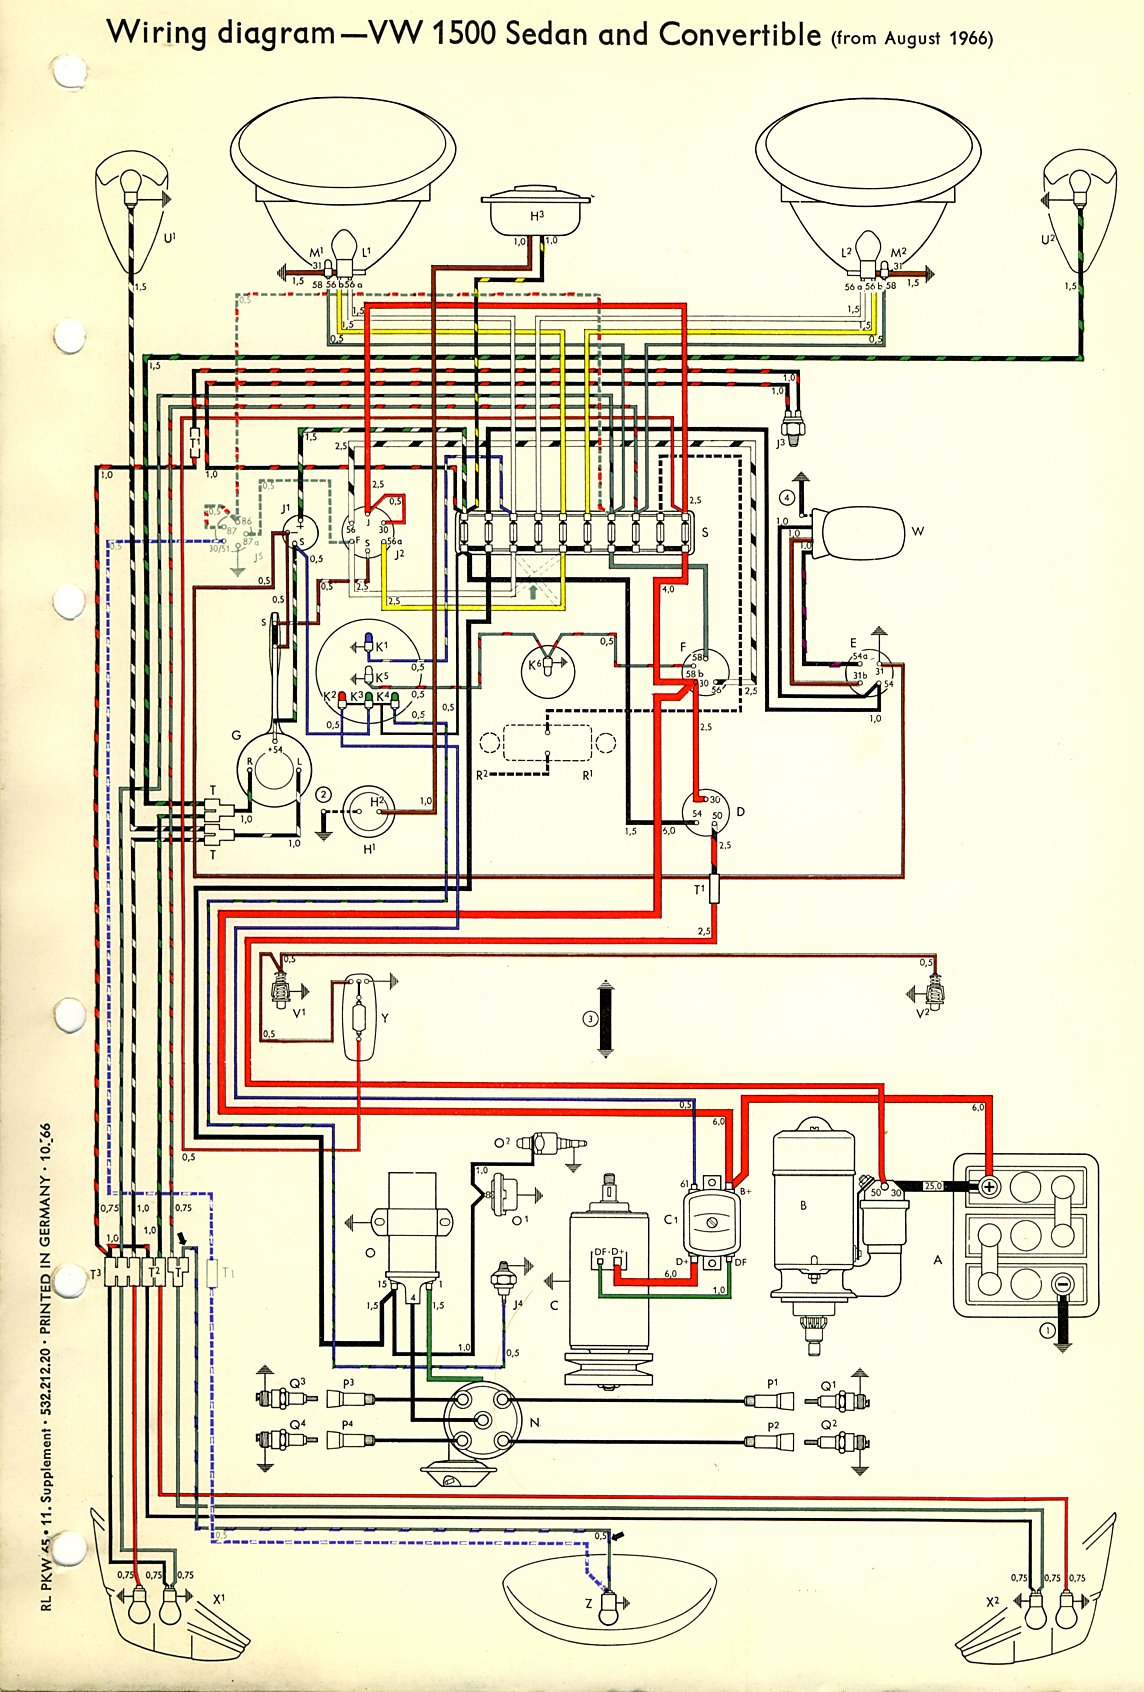 hight resolution of 1967 beetle wiring diagram thegoldenbug com vw polo fuse box location vw beetle fuse diagram